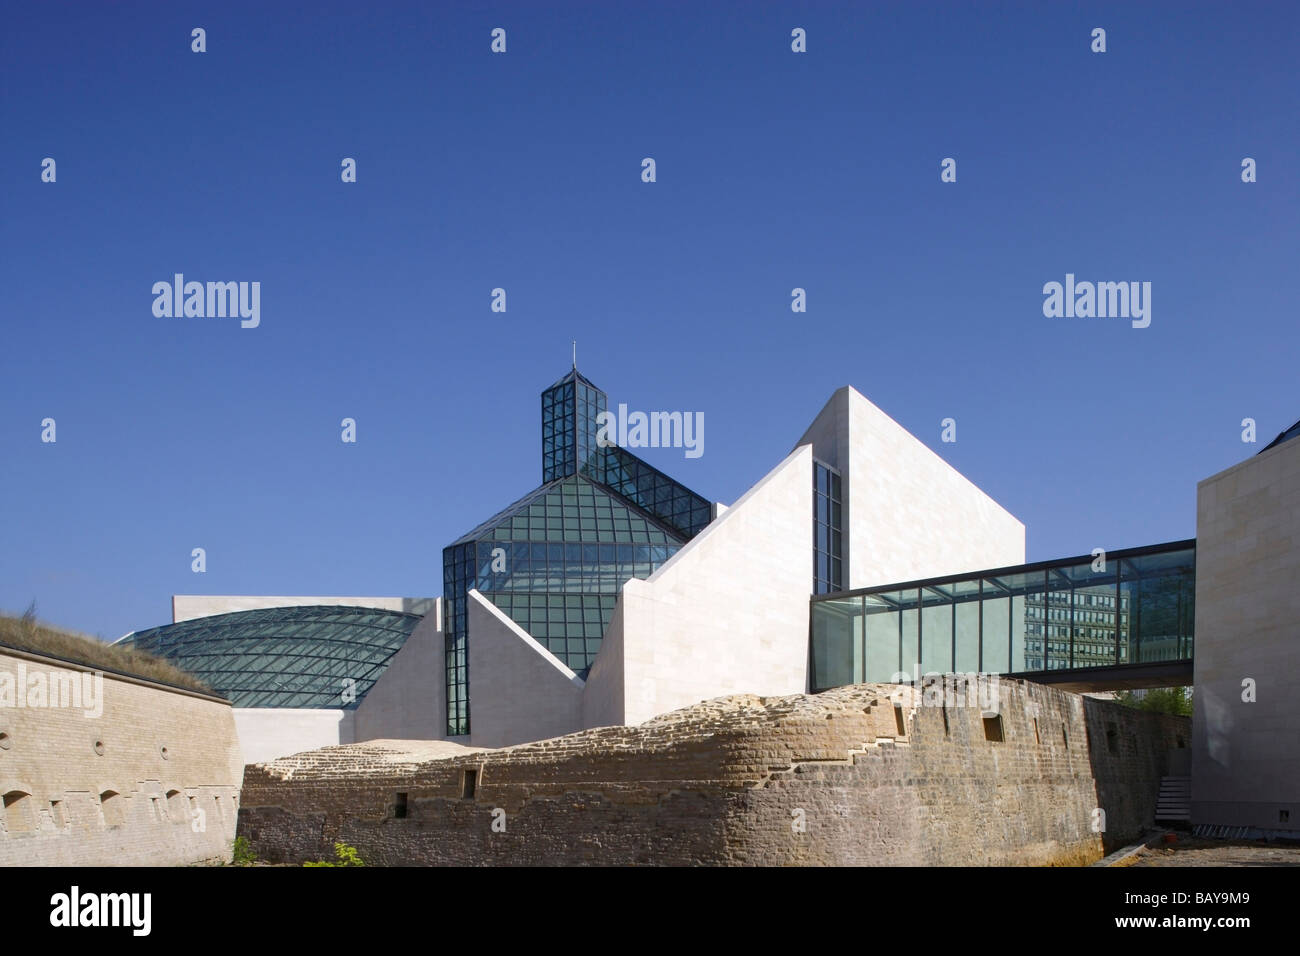 Modern Art Museum, Musee d'Art Moderne Grand-Duc Jean in the district of Kirchberg, Luxembourg - Stock Image